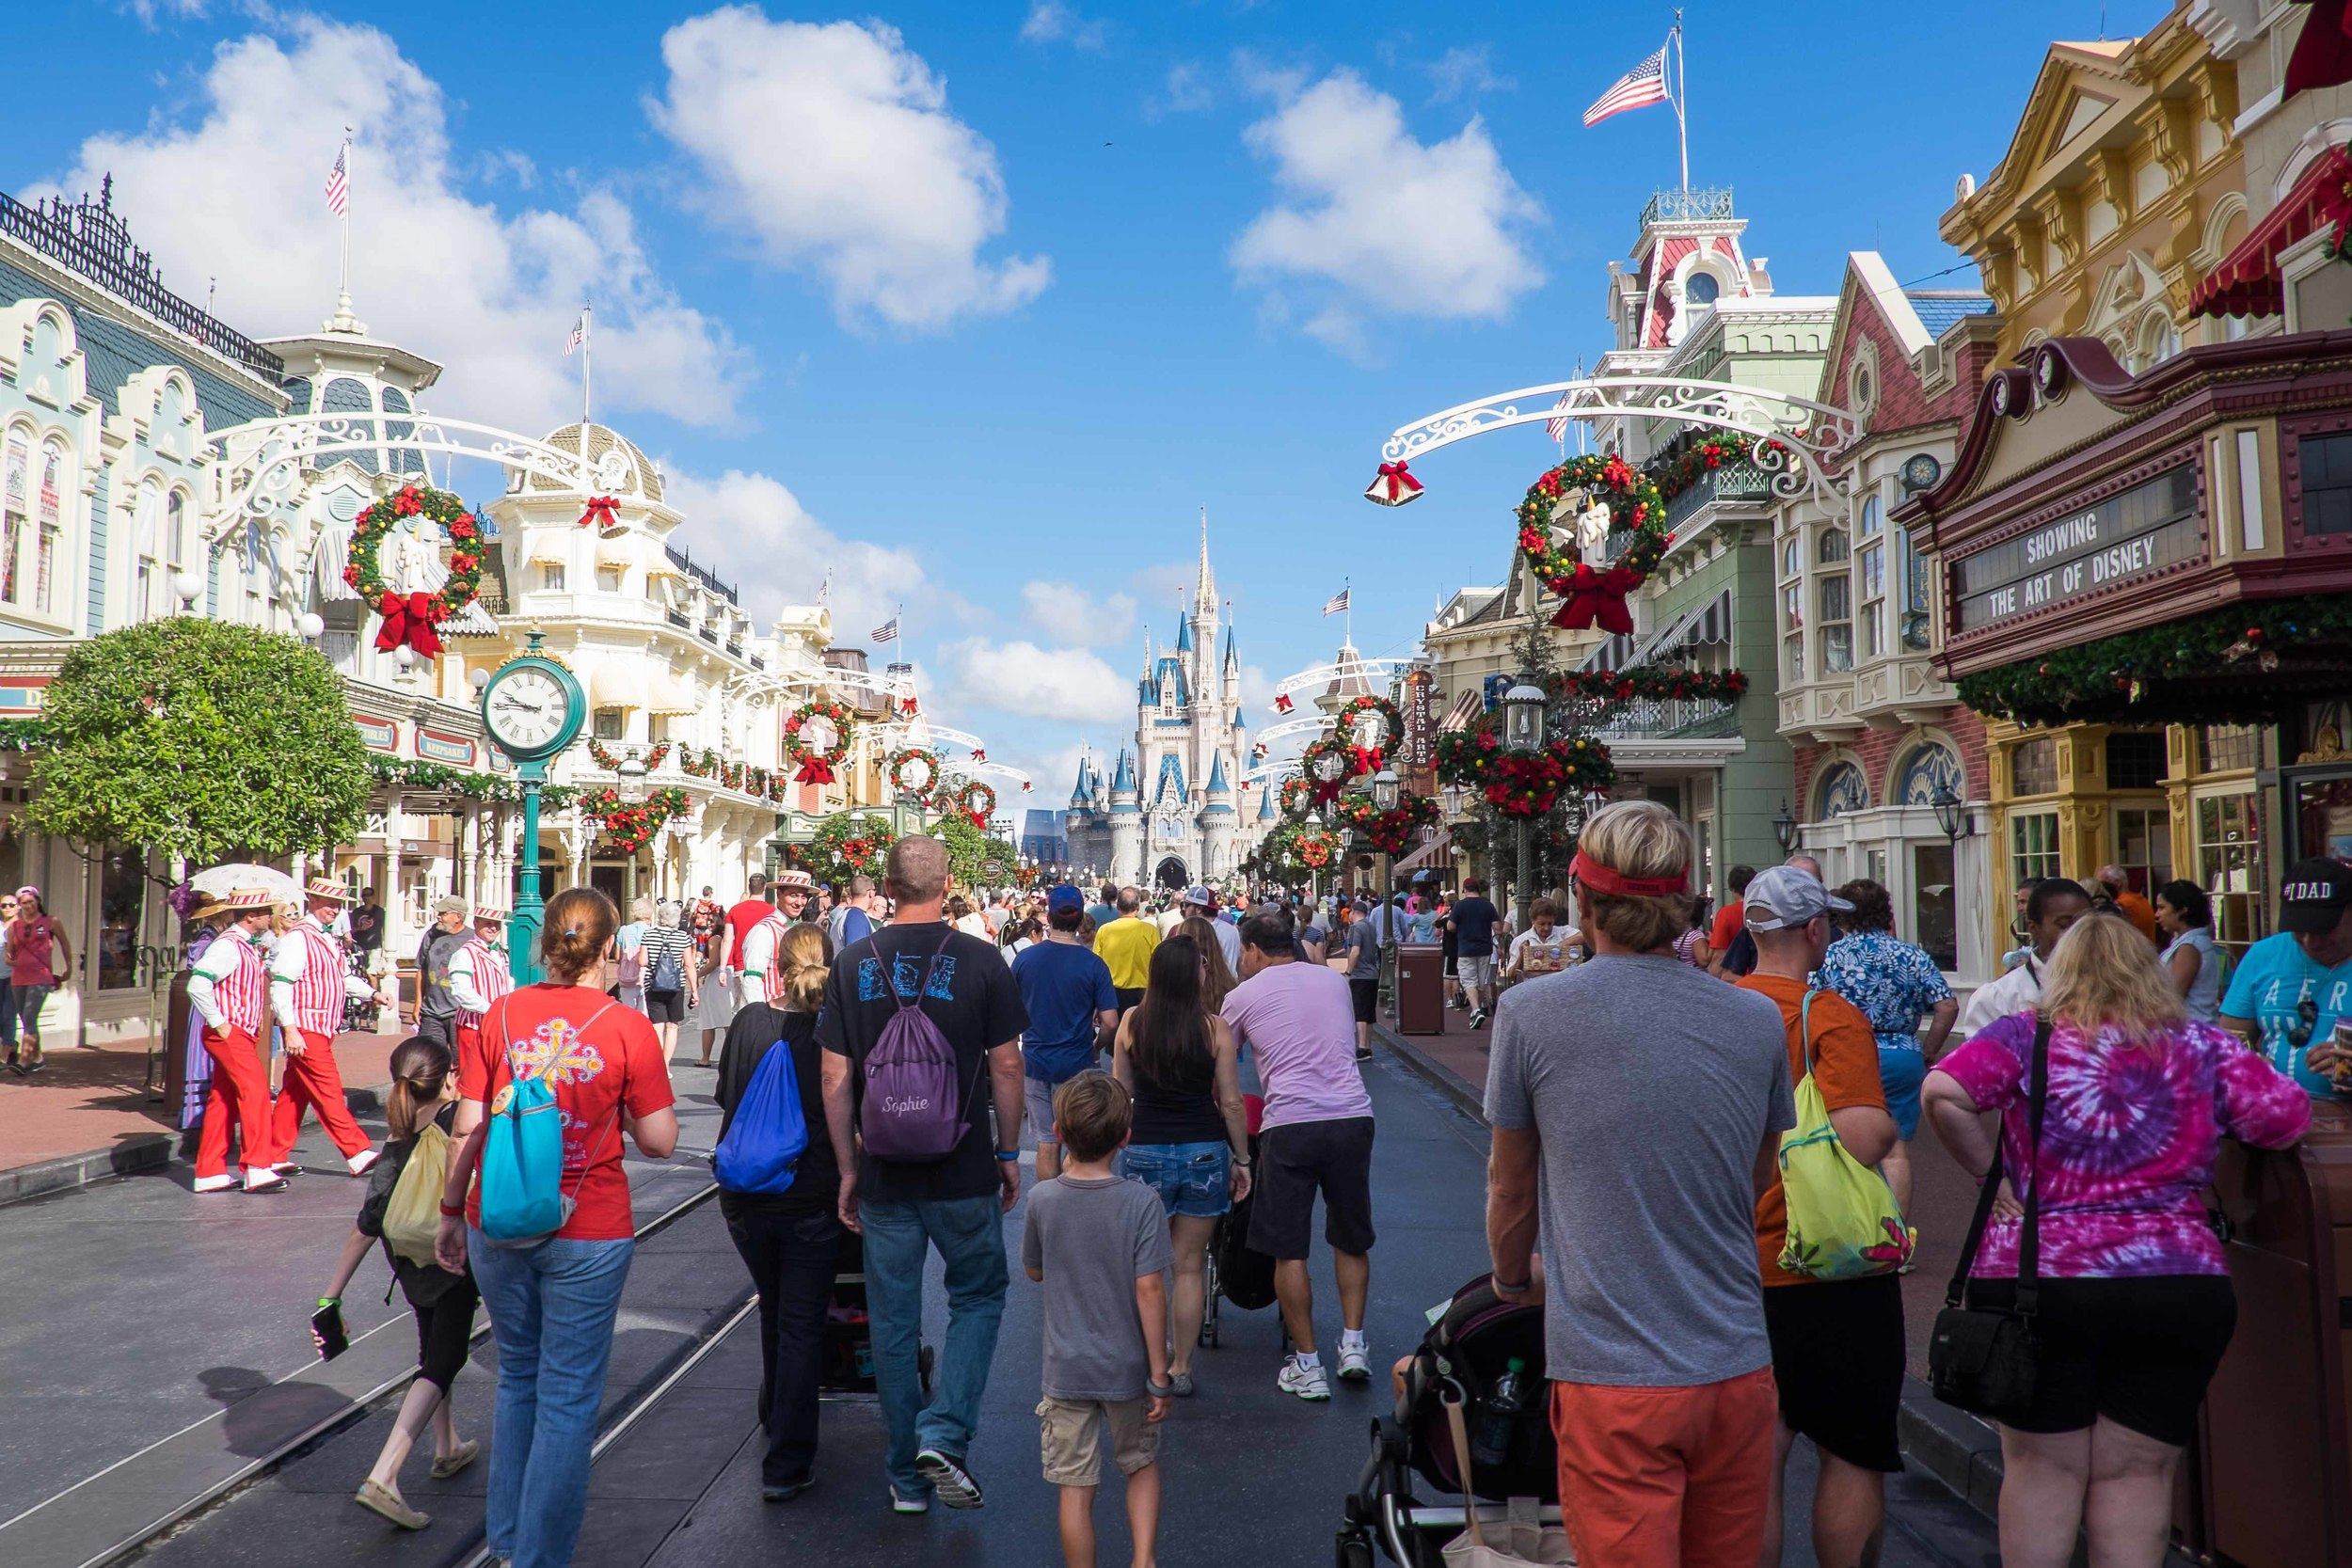 Day Seven: Our first day at the Magic Kingdom